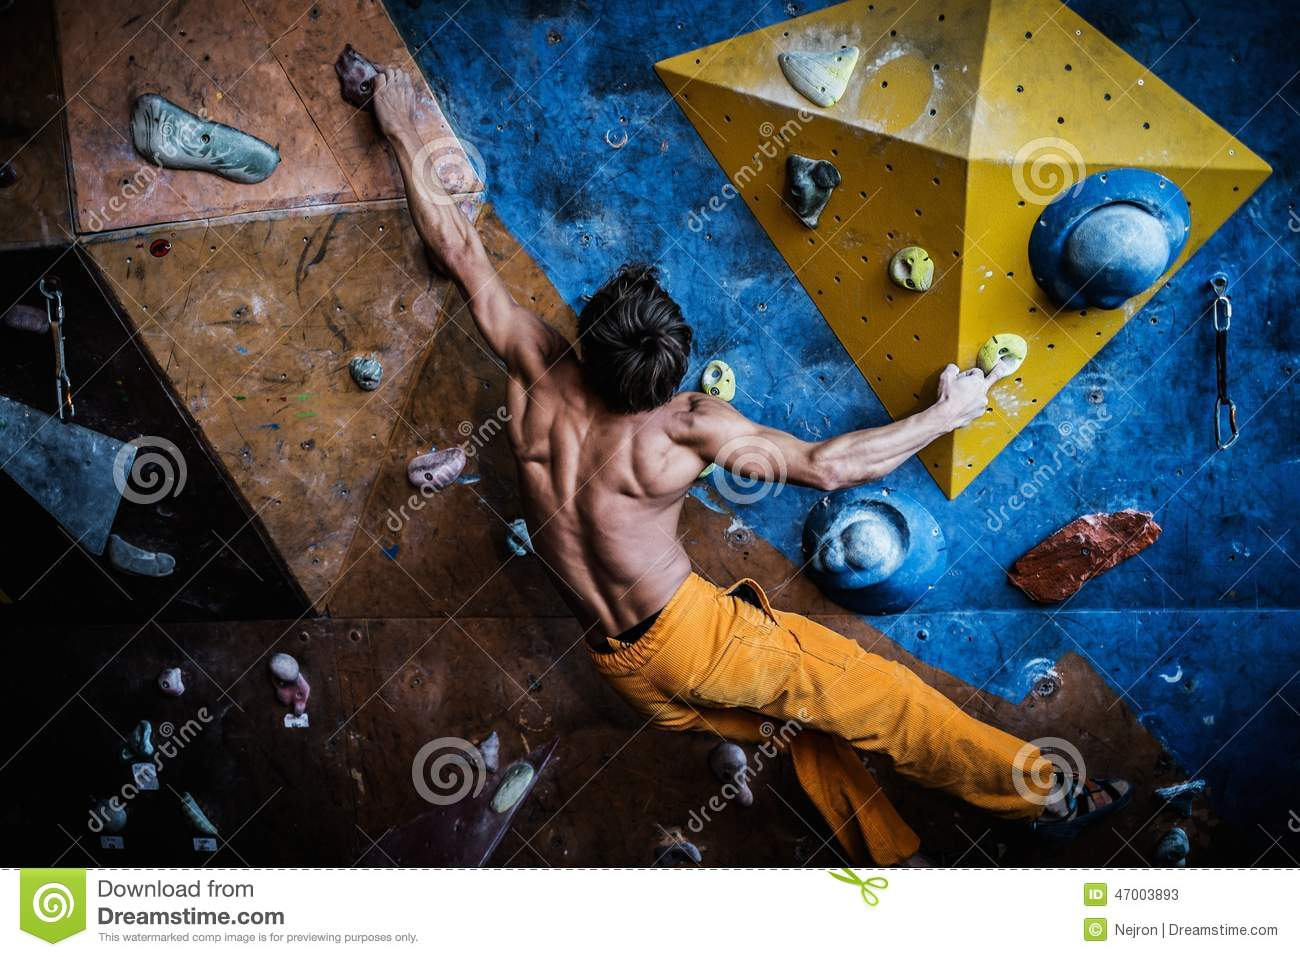 Man practicing rock-climbing on a rock wall